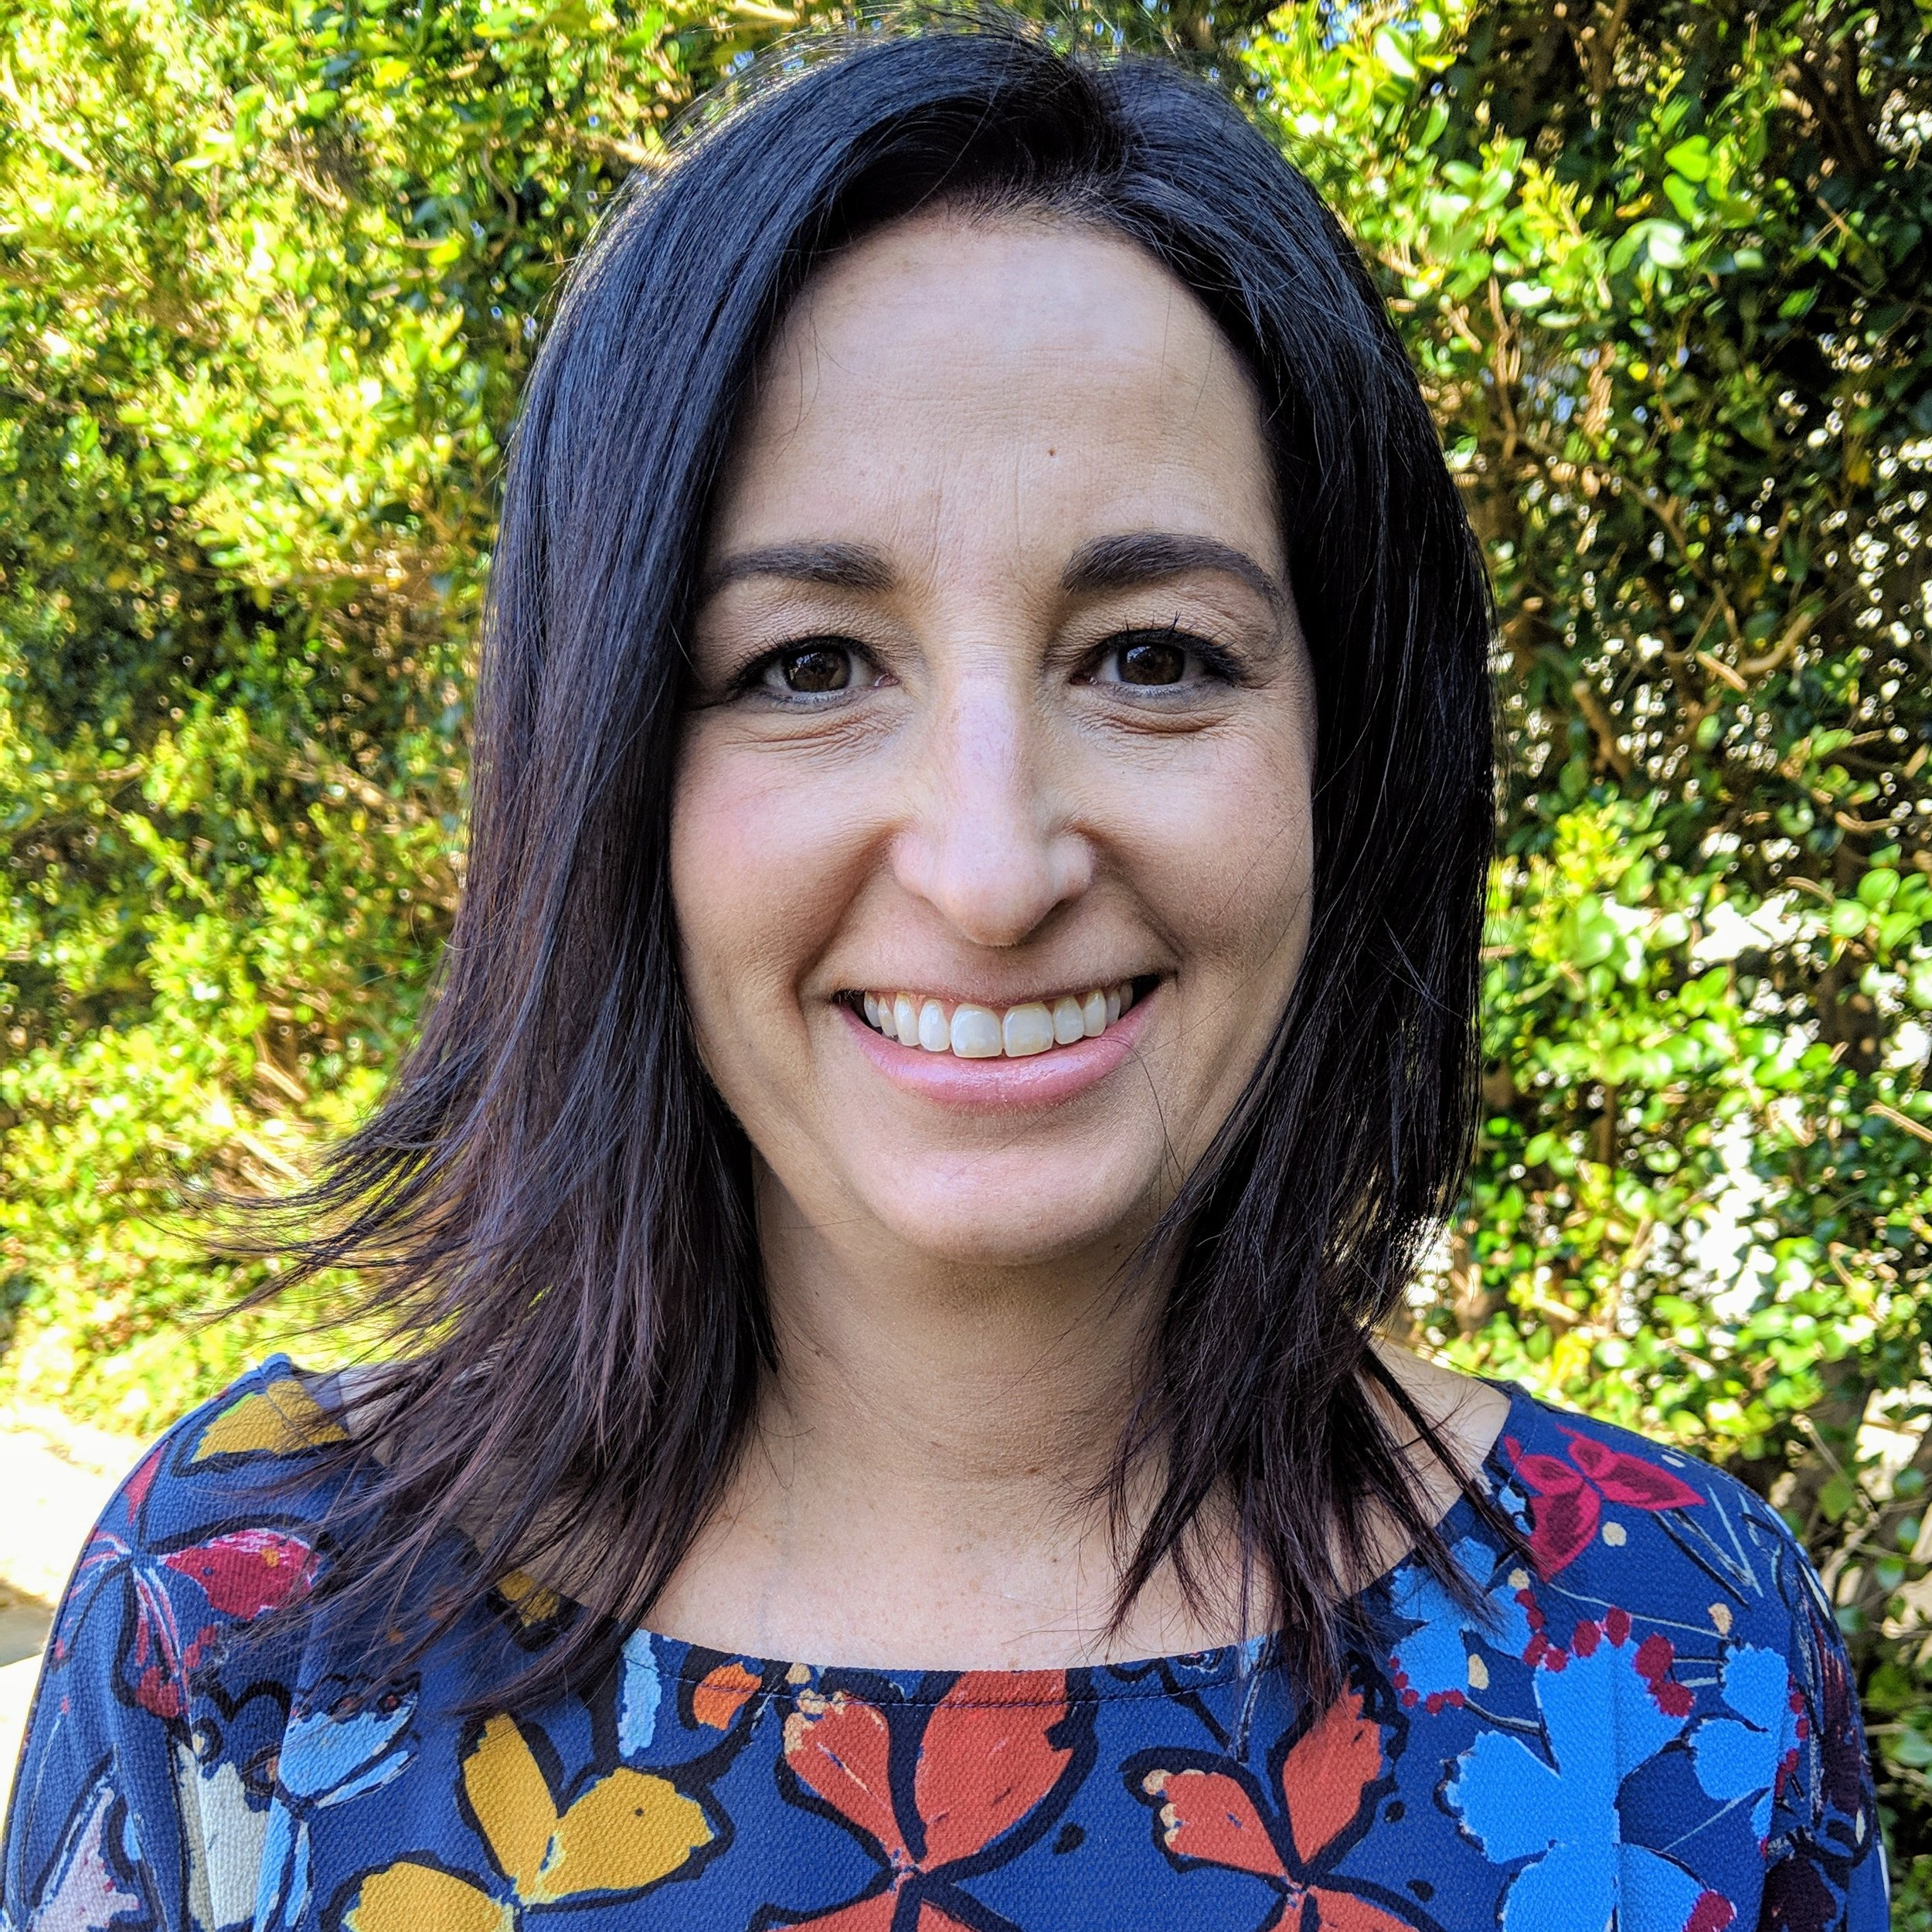 Robin Dorfman, MPH   Programs Coordinator  (919) 676-2200 x129  JFSPrograms@ShalomRaleigh.org   Robin joined JFS in March 2019 as the Programs Coordinator. With input from the JFS Clinical staff, she develops and implements broad-based community outreach programs that are social service in nature.